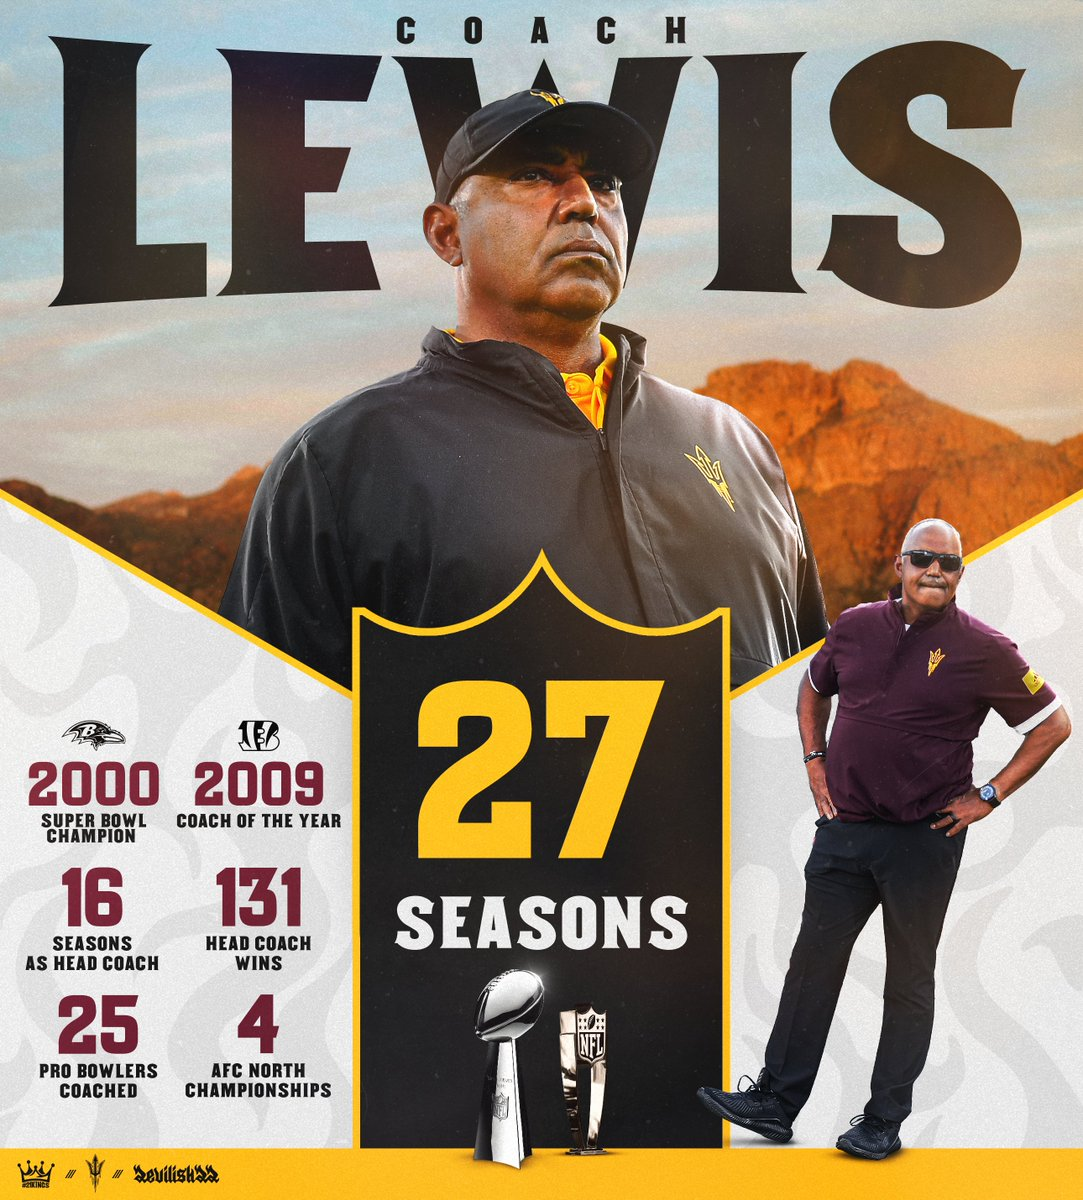 Coach @MarvinLewis = Pro Model✅ #21kings #Devilish22 #Forksup